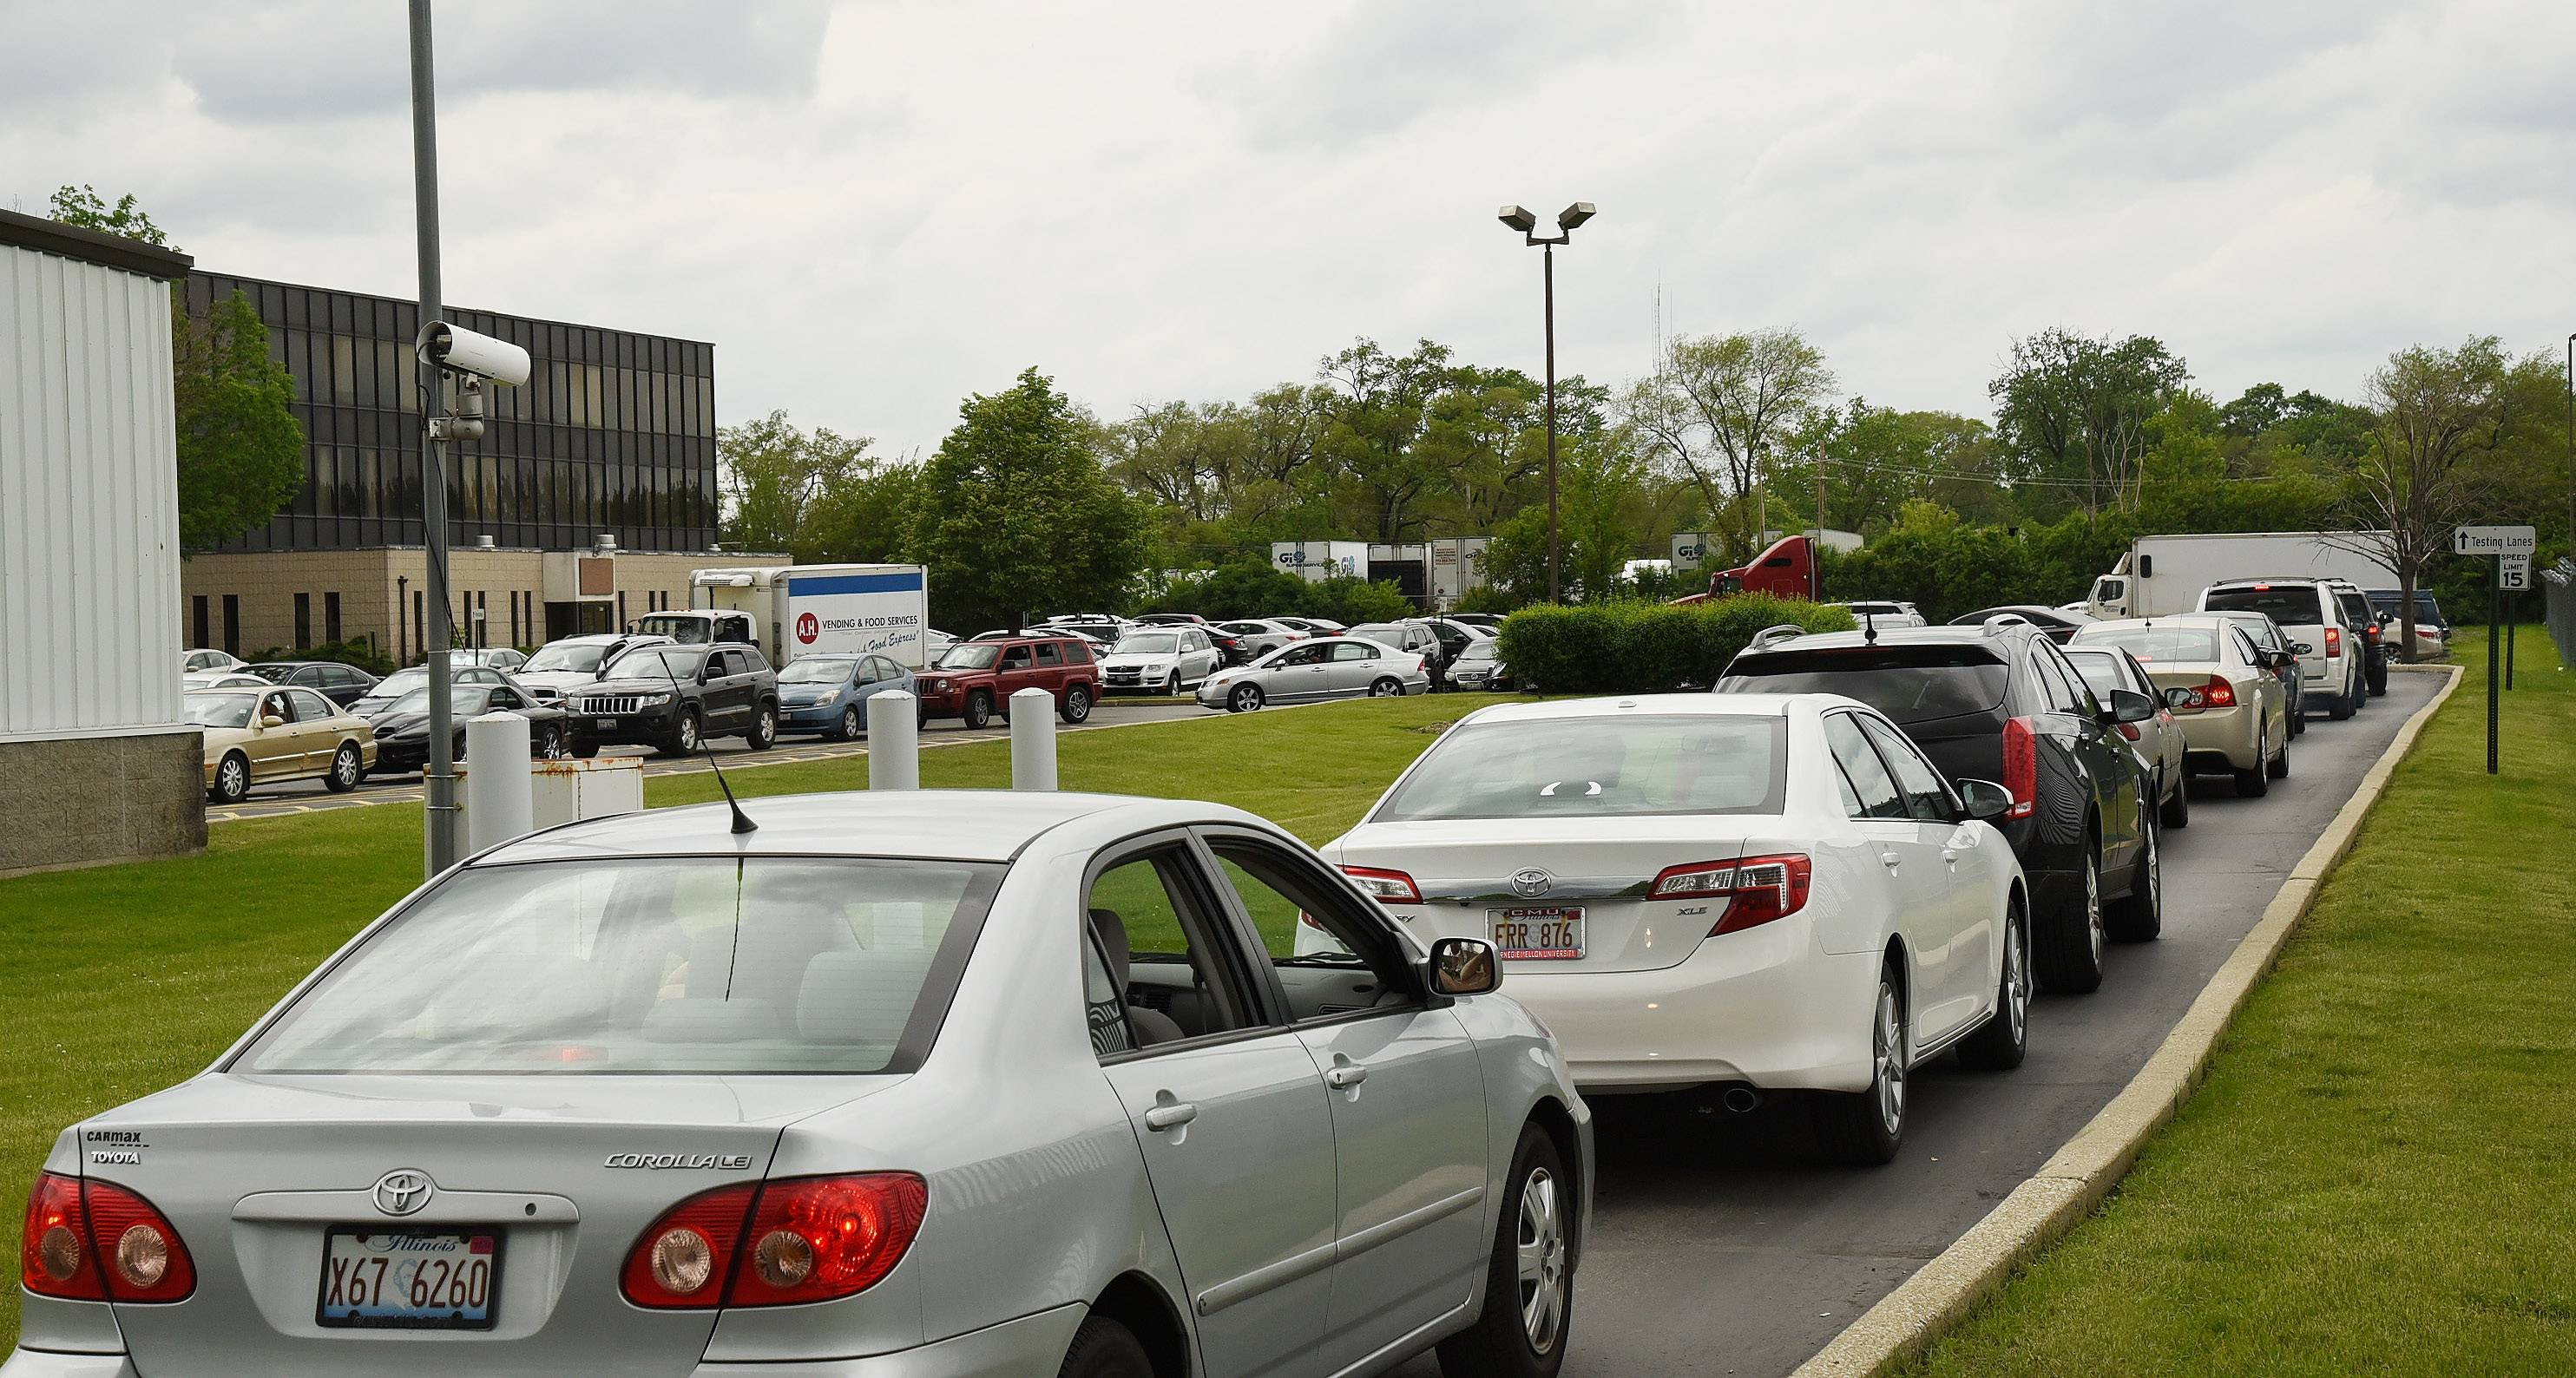 Emission test requirement, holiday weekend spur long lines